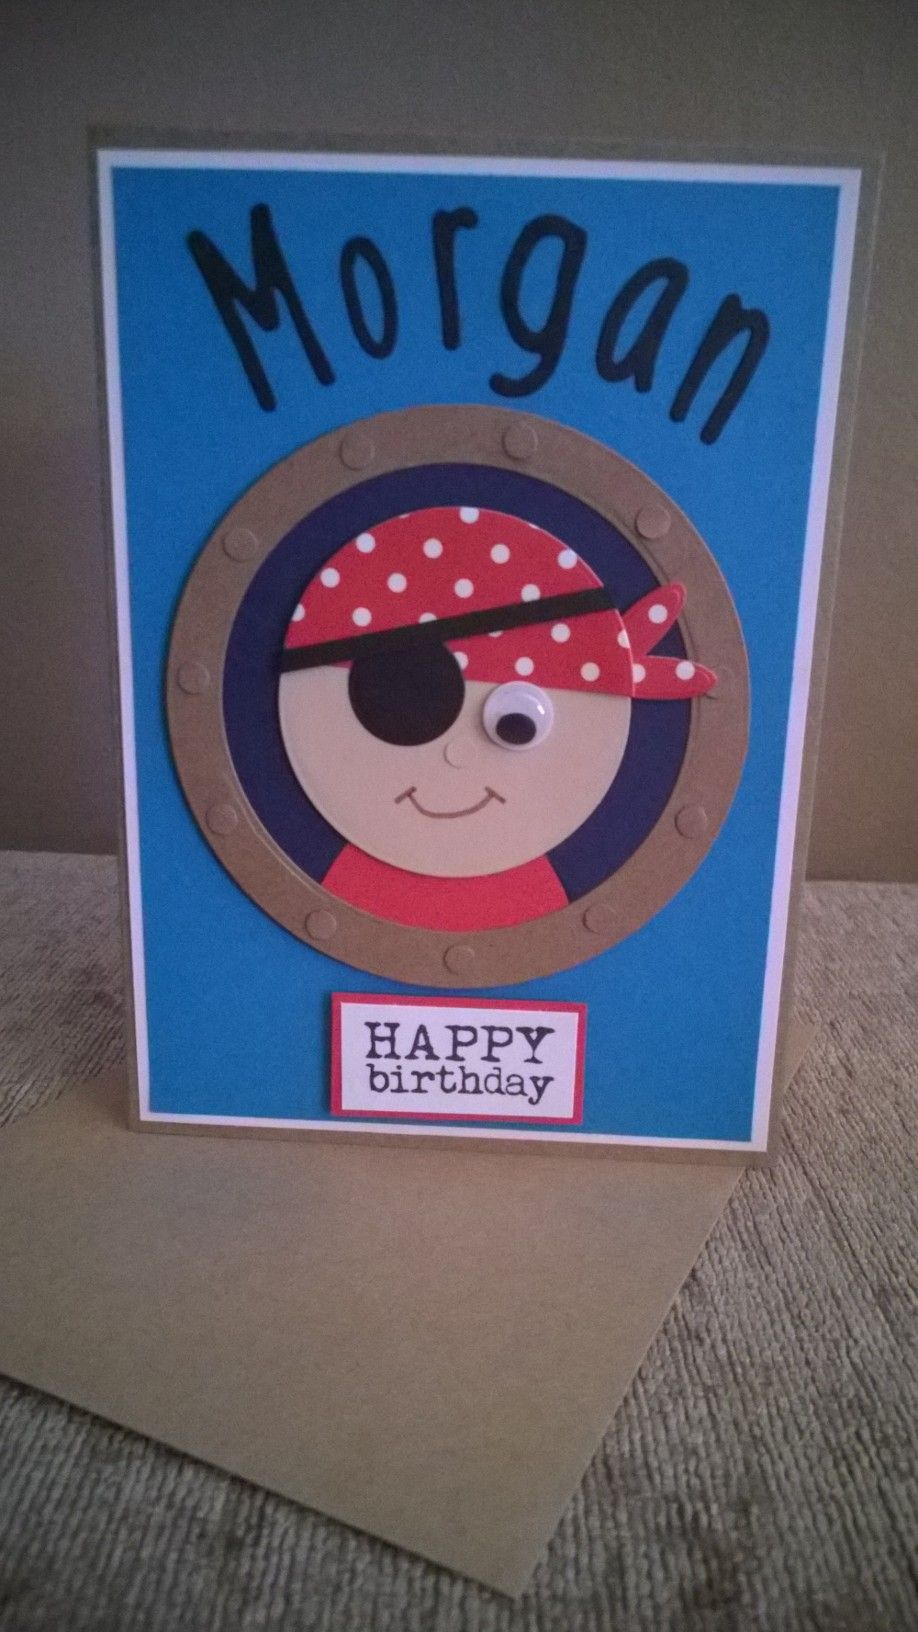 Pin by Alison Bone on Alison's homemade cards Chicago